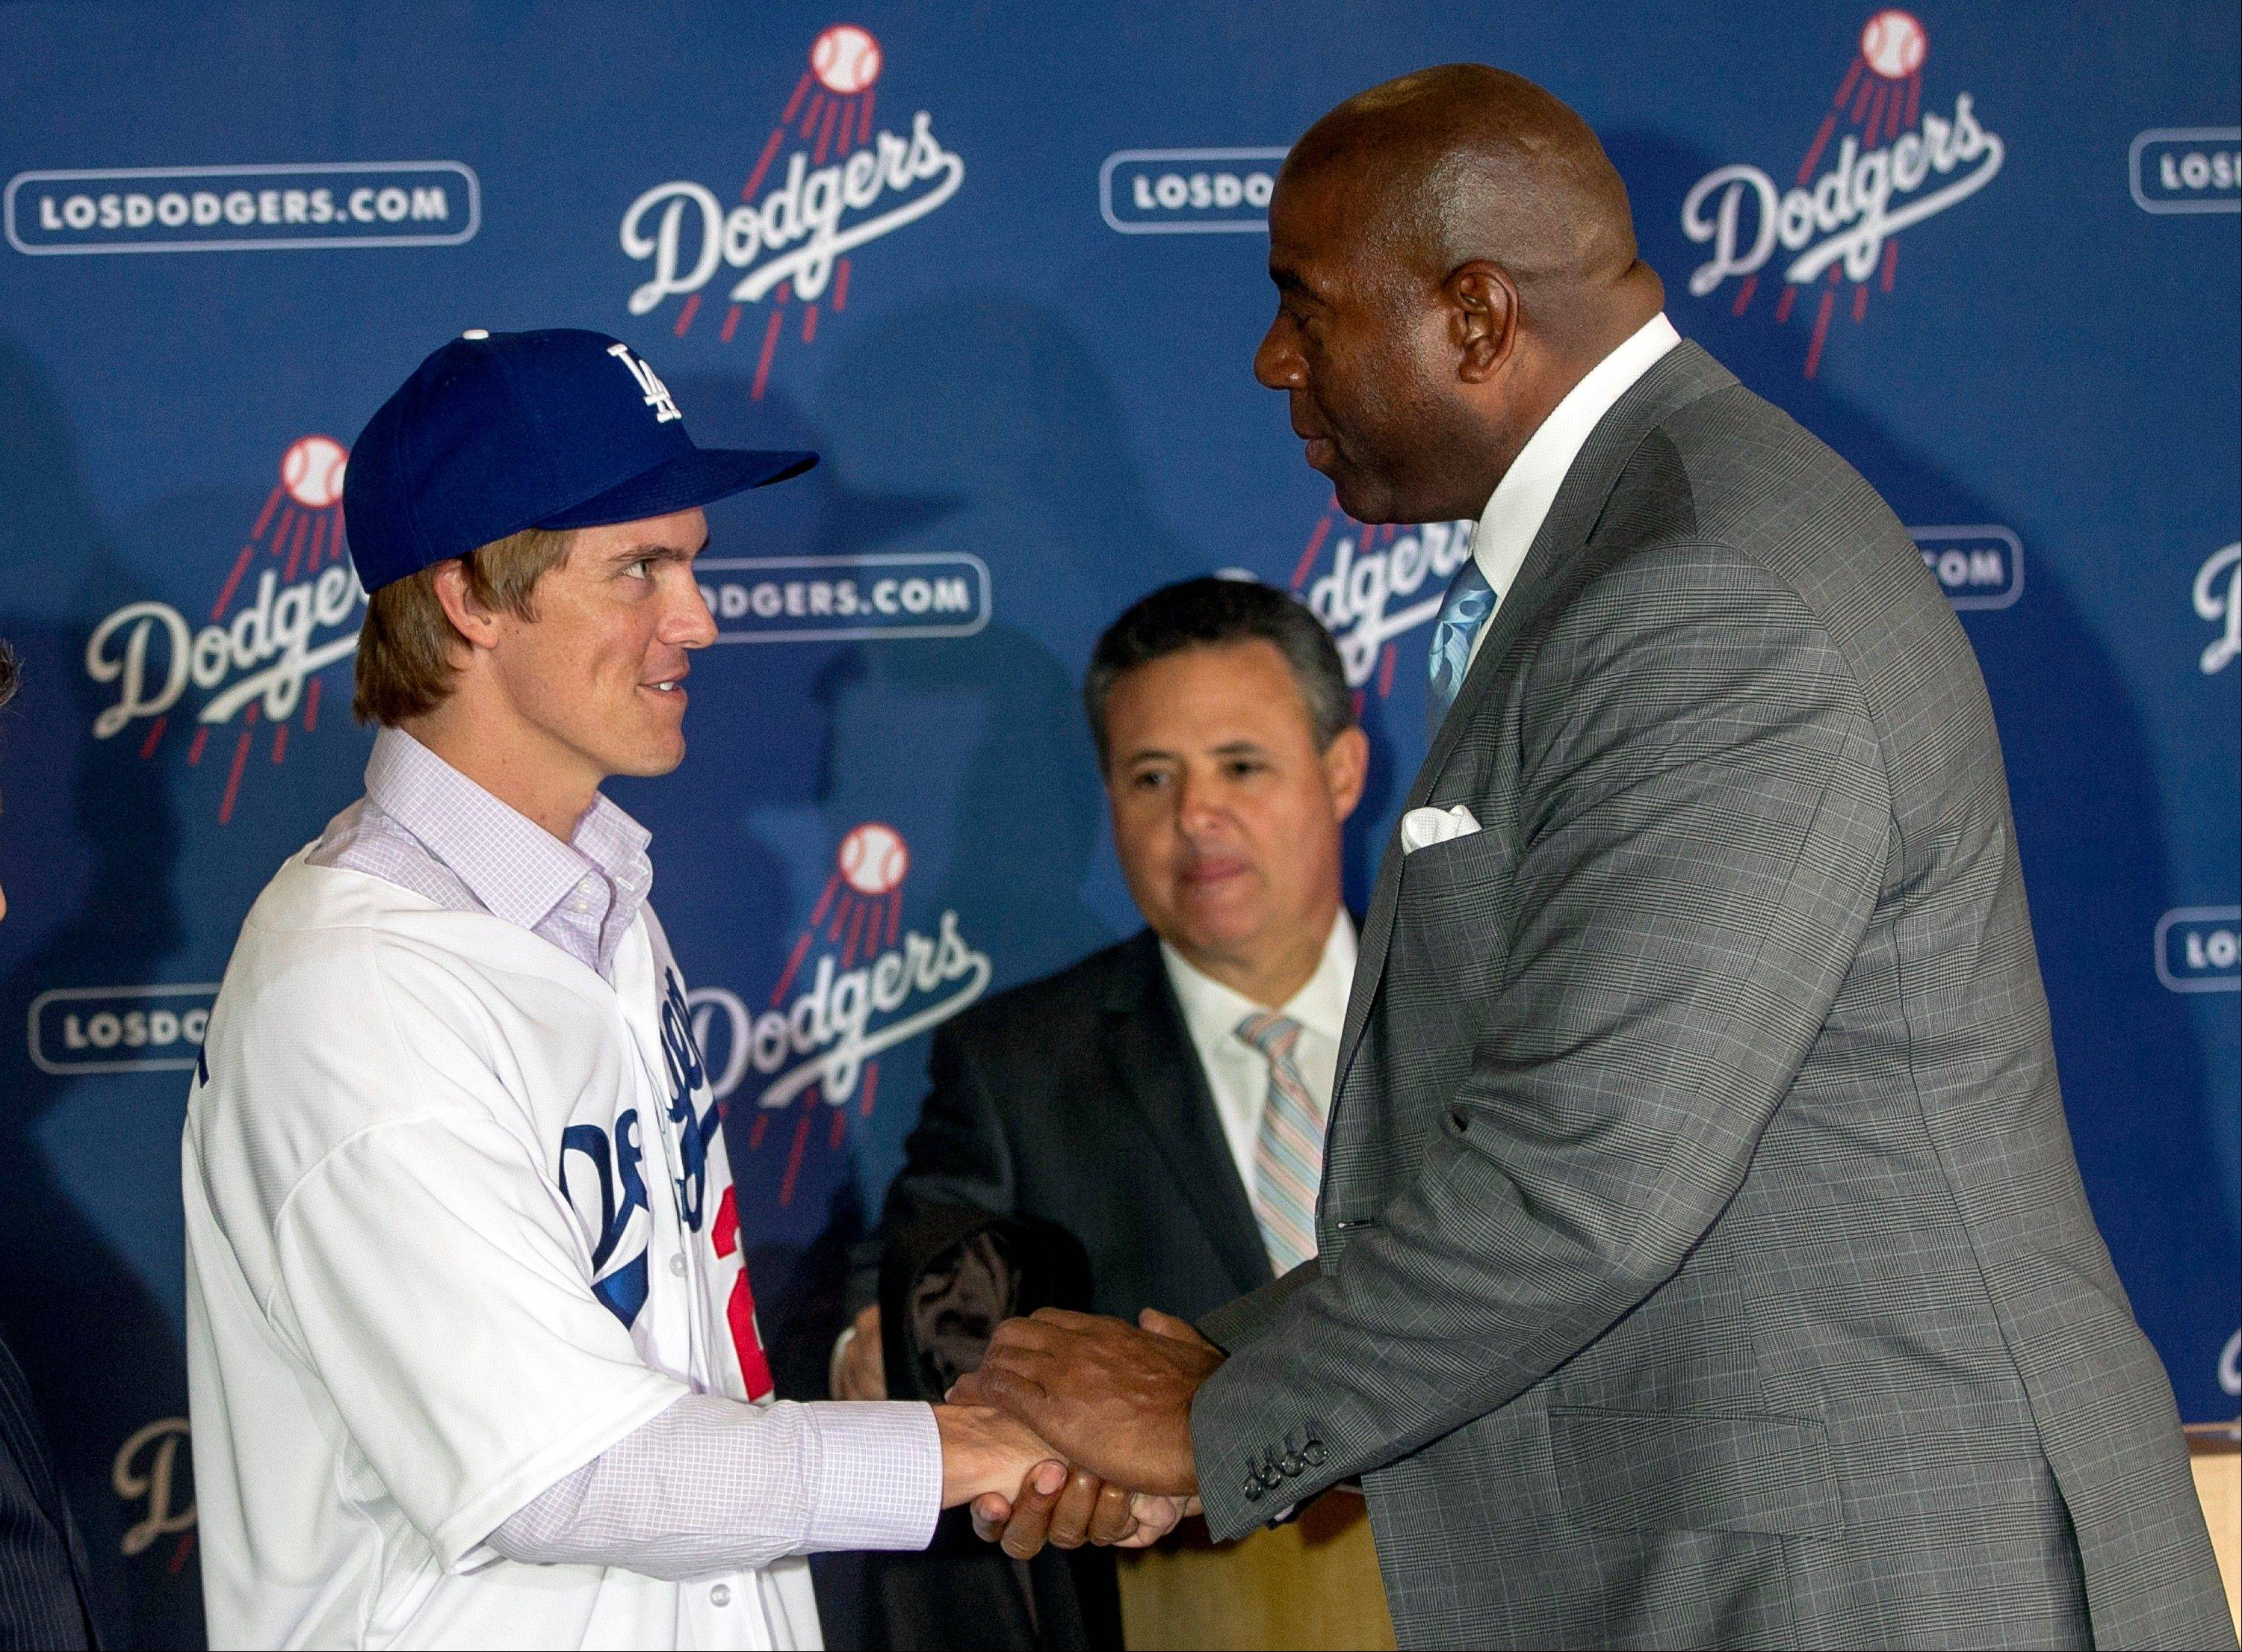 New Los Angeles Dodgers pitcher Zack Greinke, left, shakes hands with co-owner Magic Johnson during a news conference announcing his $147 million, six-year contract Tuesday.